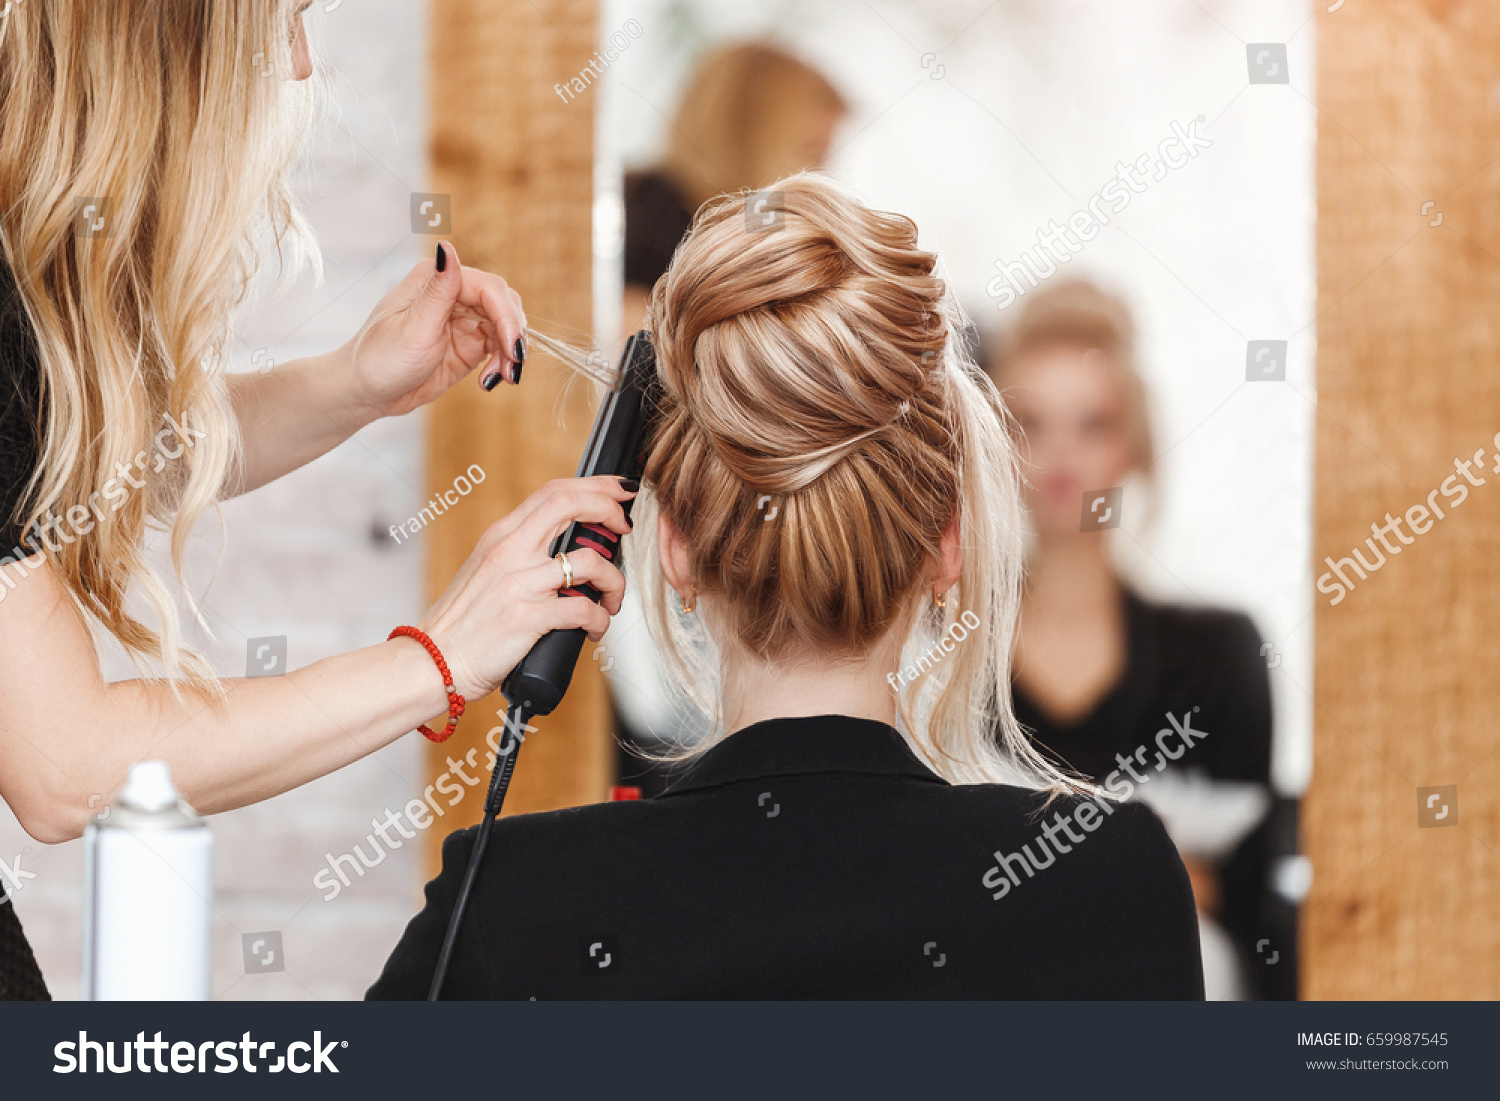 business woman lady boss in beauty salon making hairdress and looking to the mirror #659987545